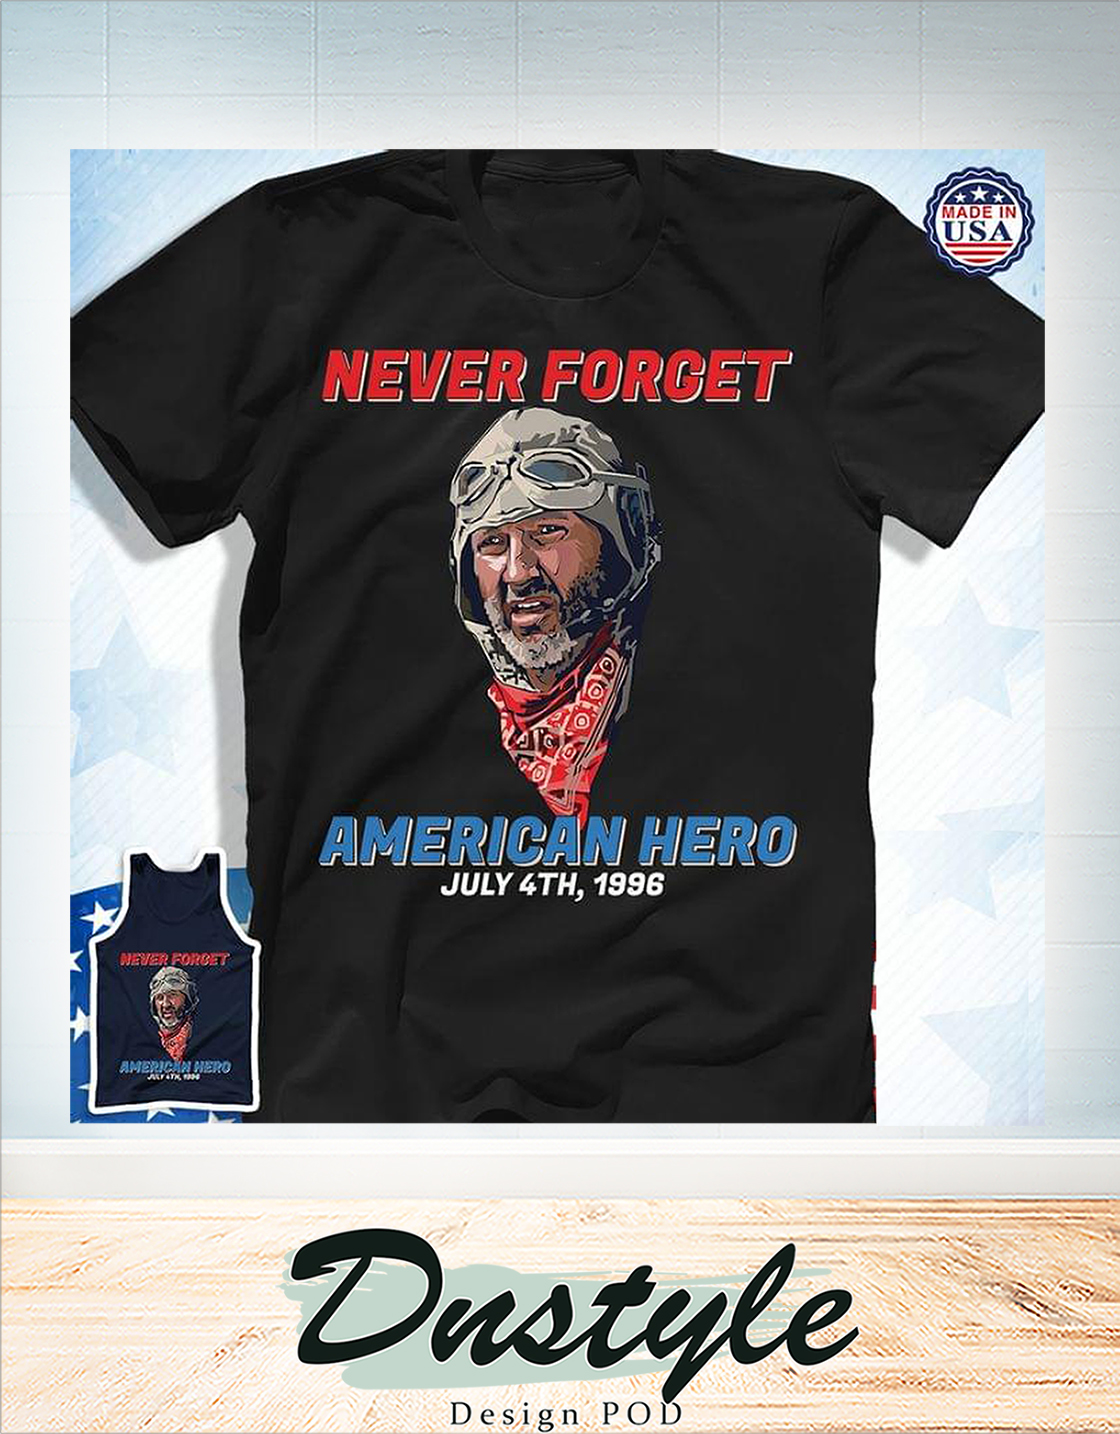 Never forget american hero july 4th 1986 t-shirt 2